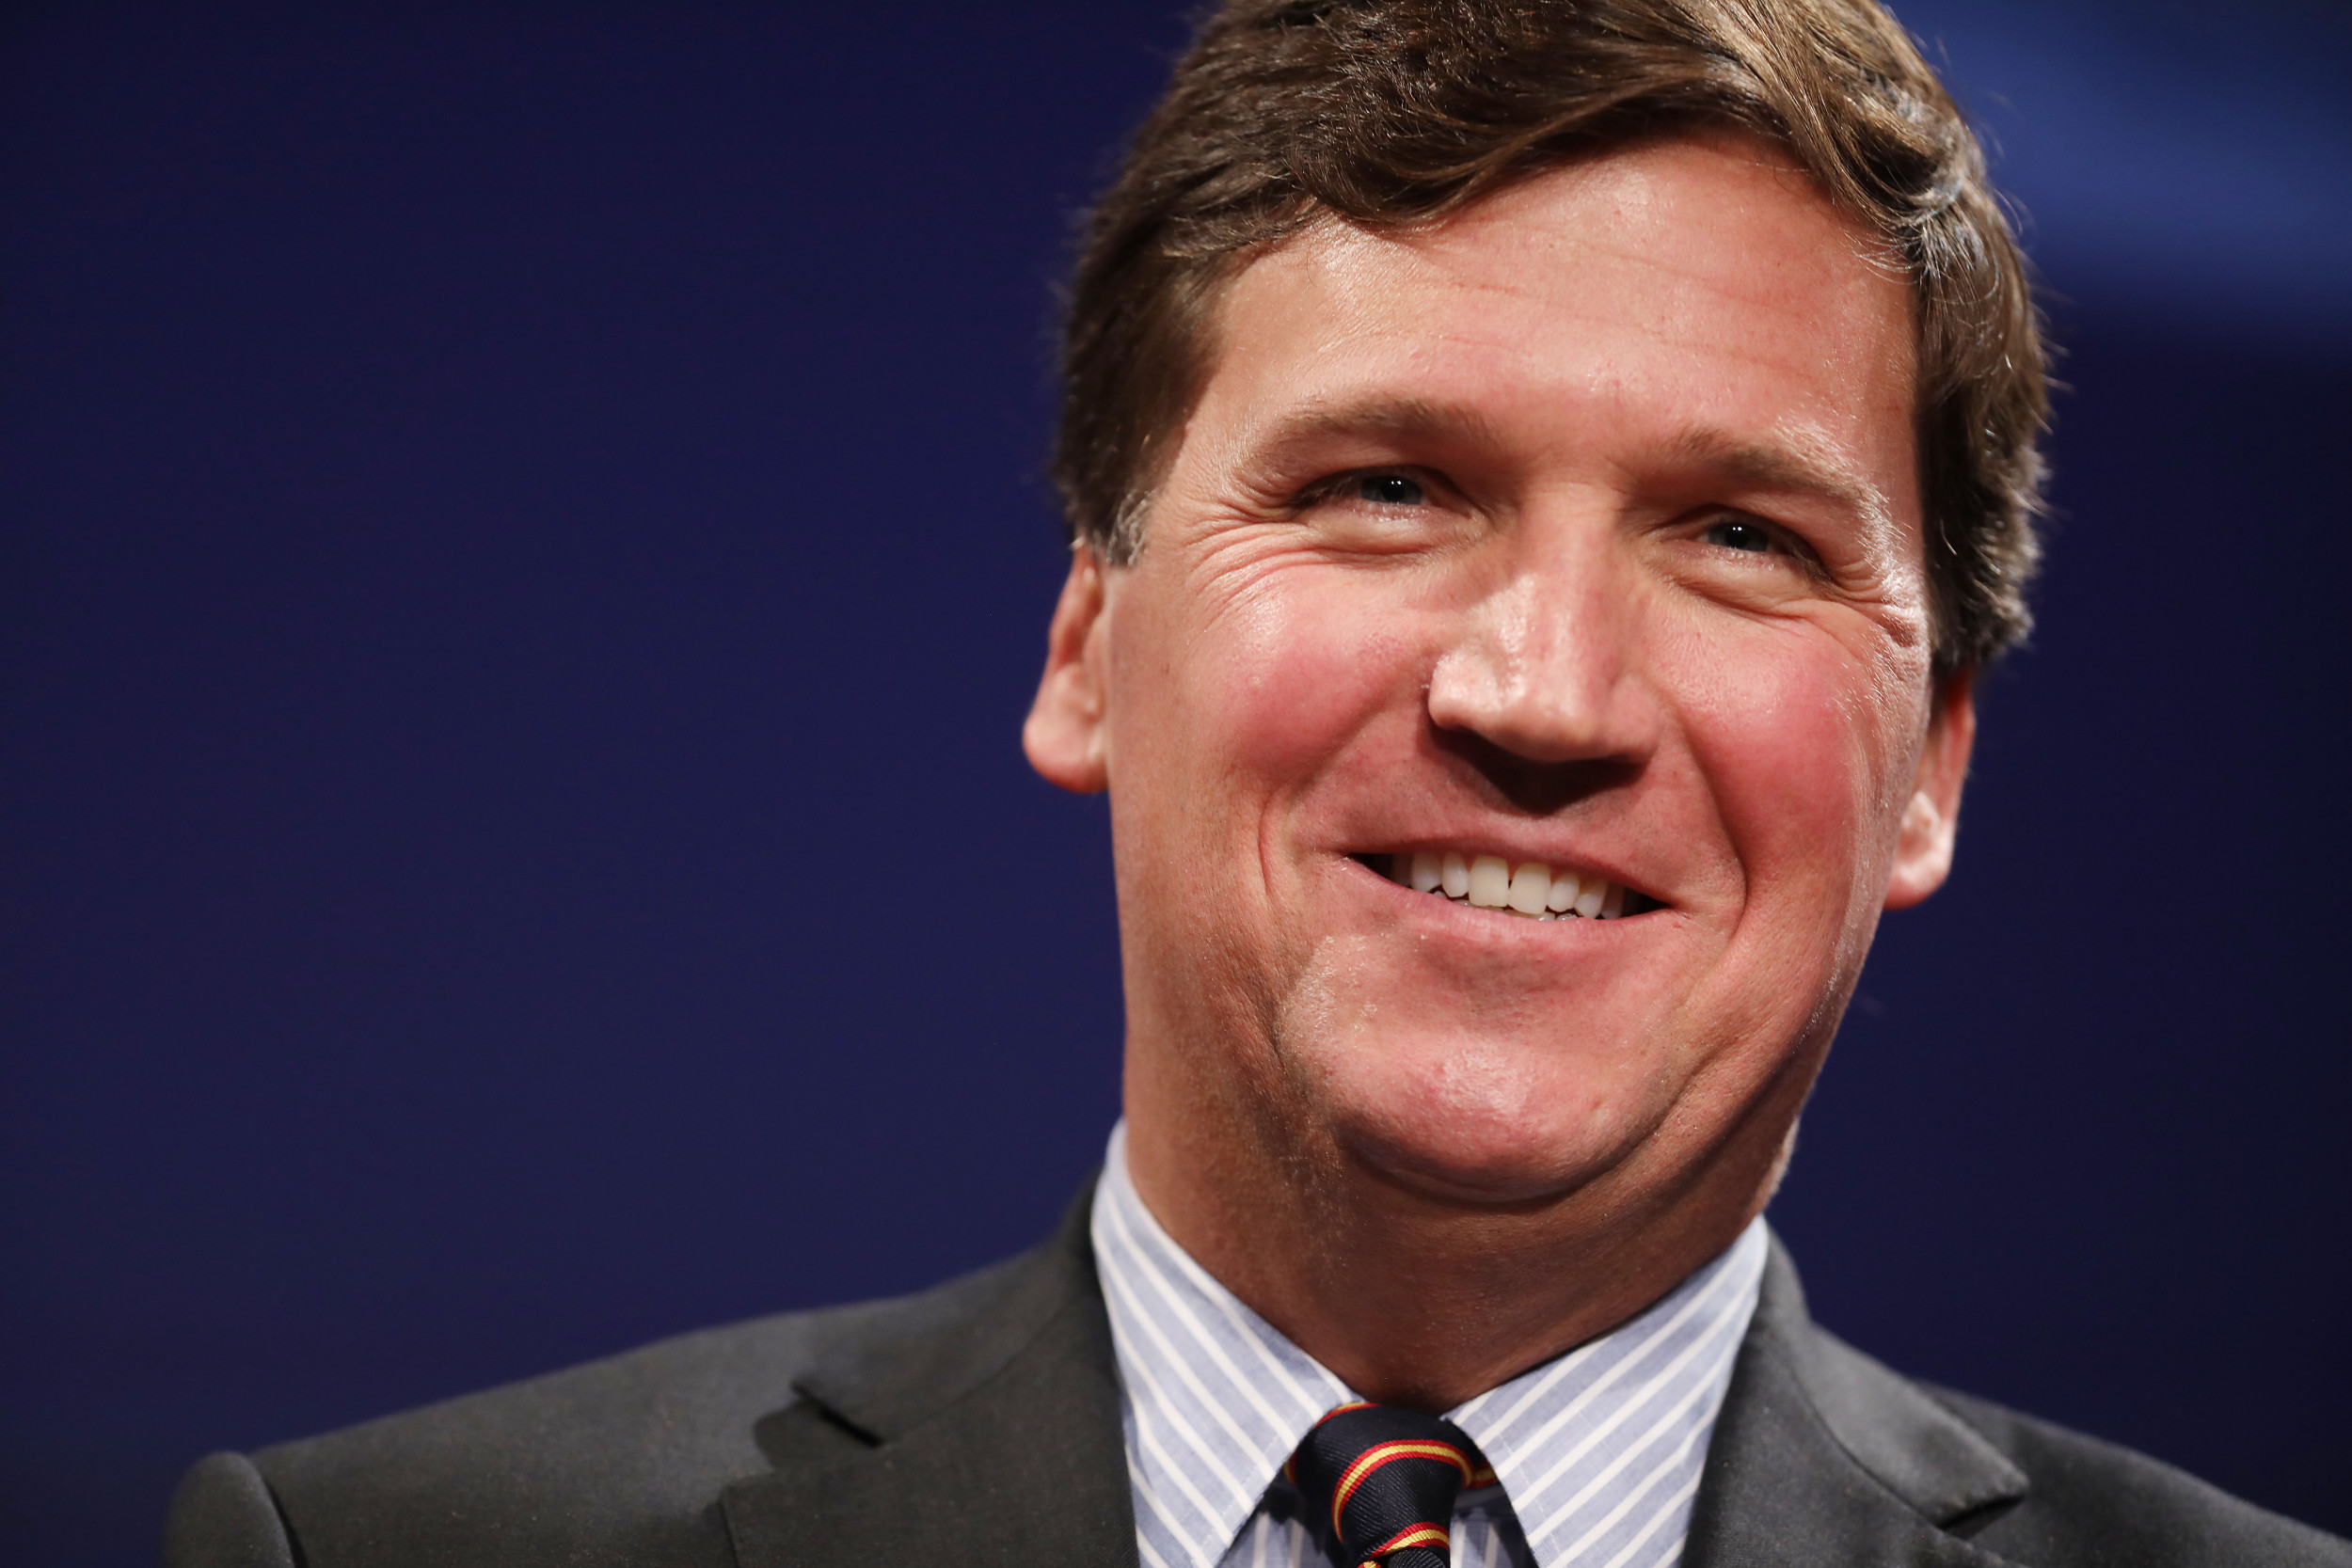 Tucker Carlson Says Fox News Has 'Got Our Back' After Ilhan